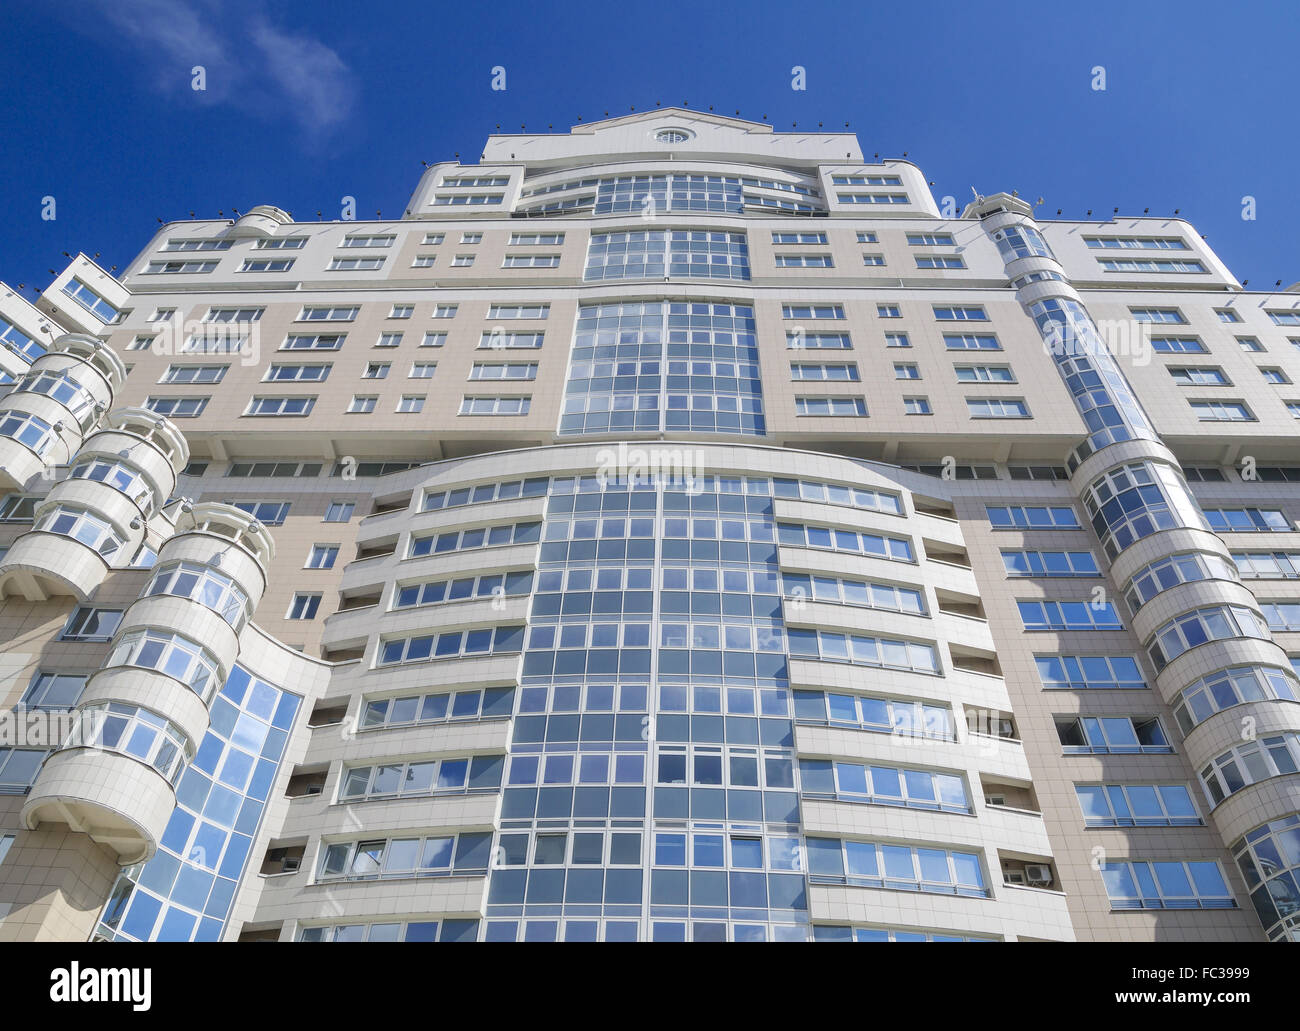 Detail of modern architecture - Stock Image